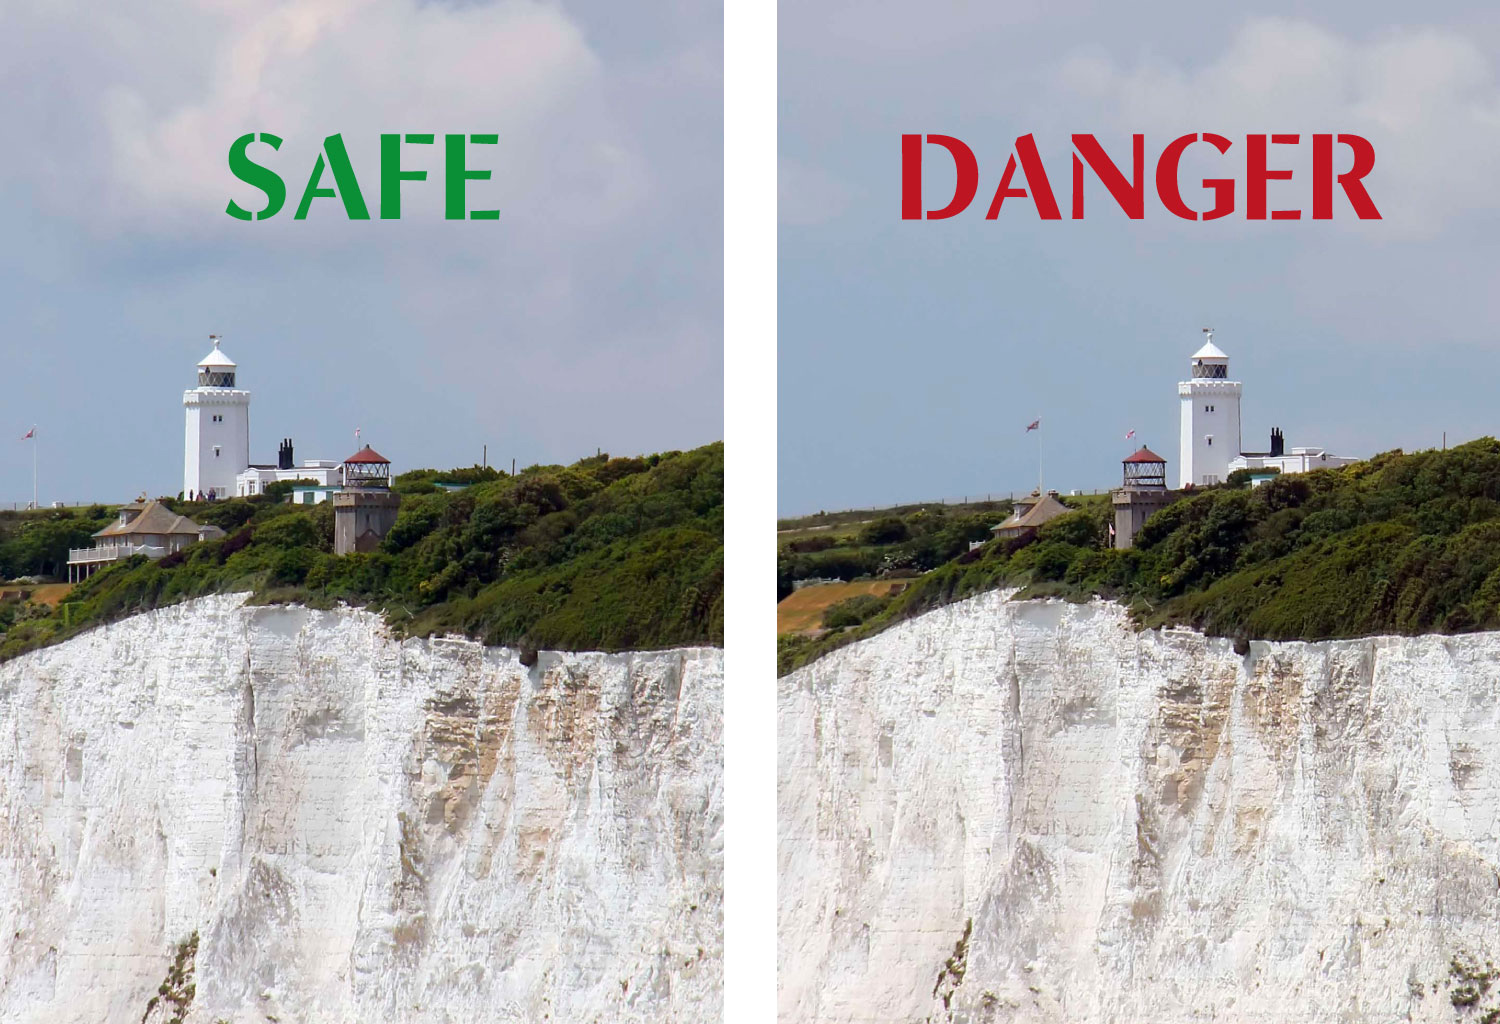 Safe or Danger?